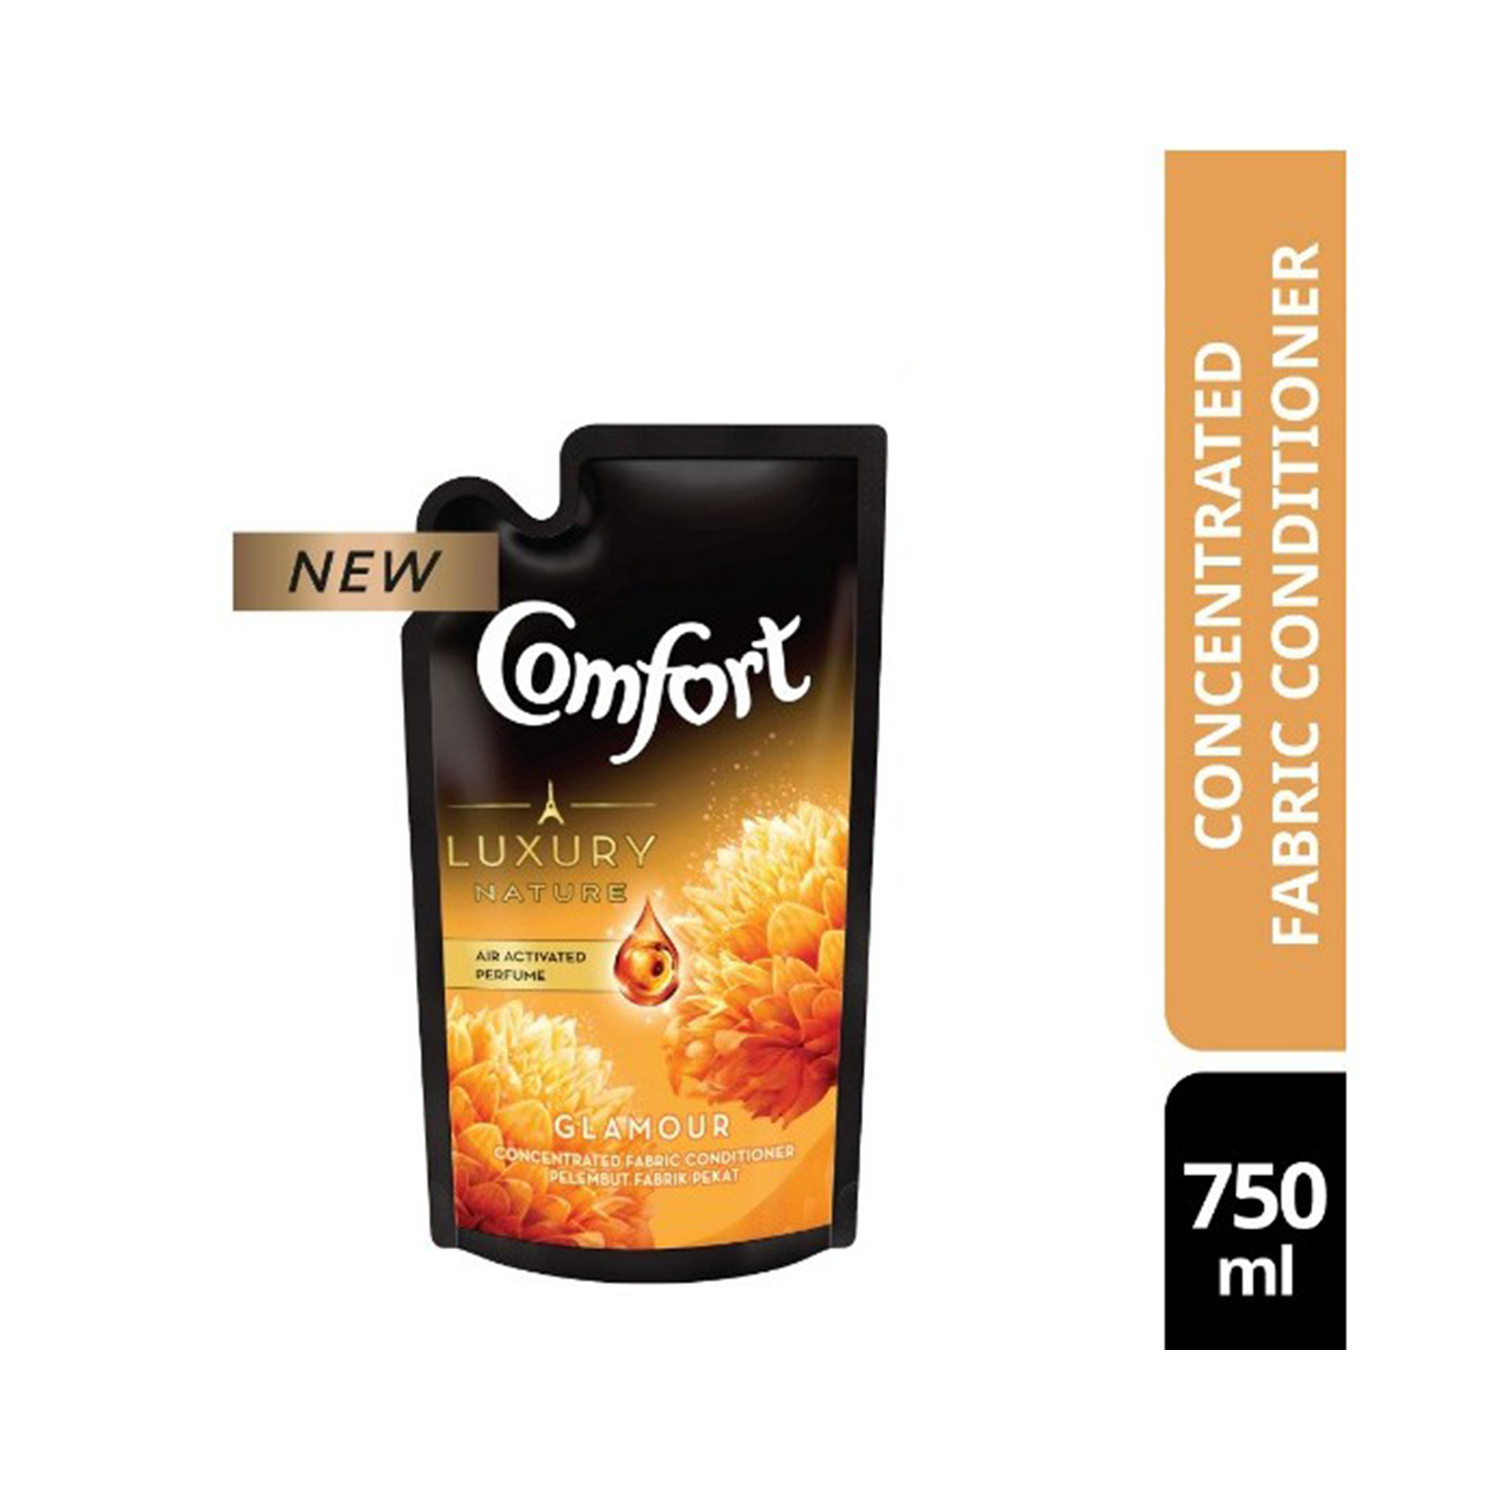 COMFORT FABRIC CONDITIONER GOLD GLAMOUR POUCH REFILL 750ML